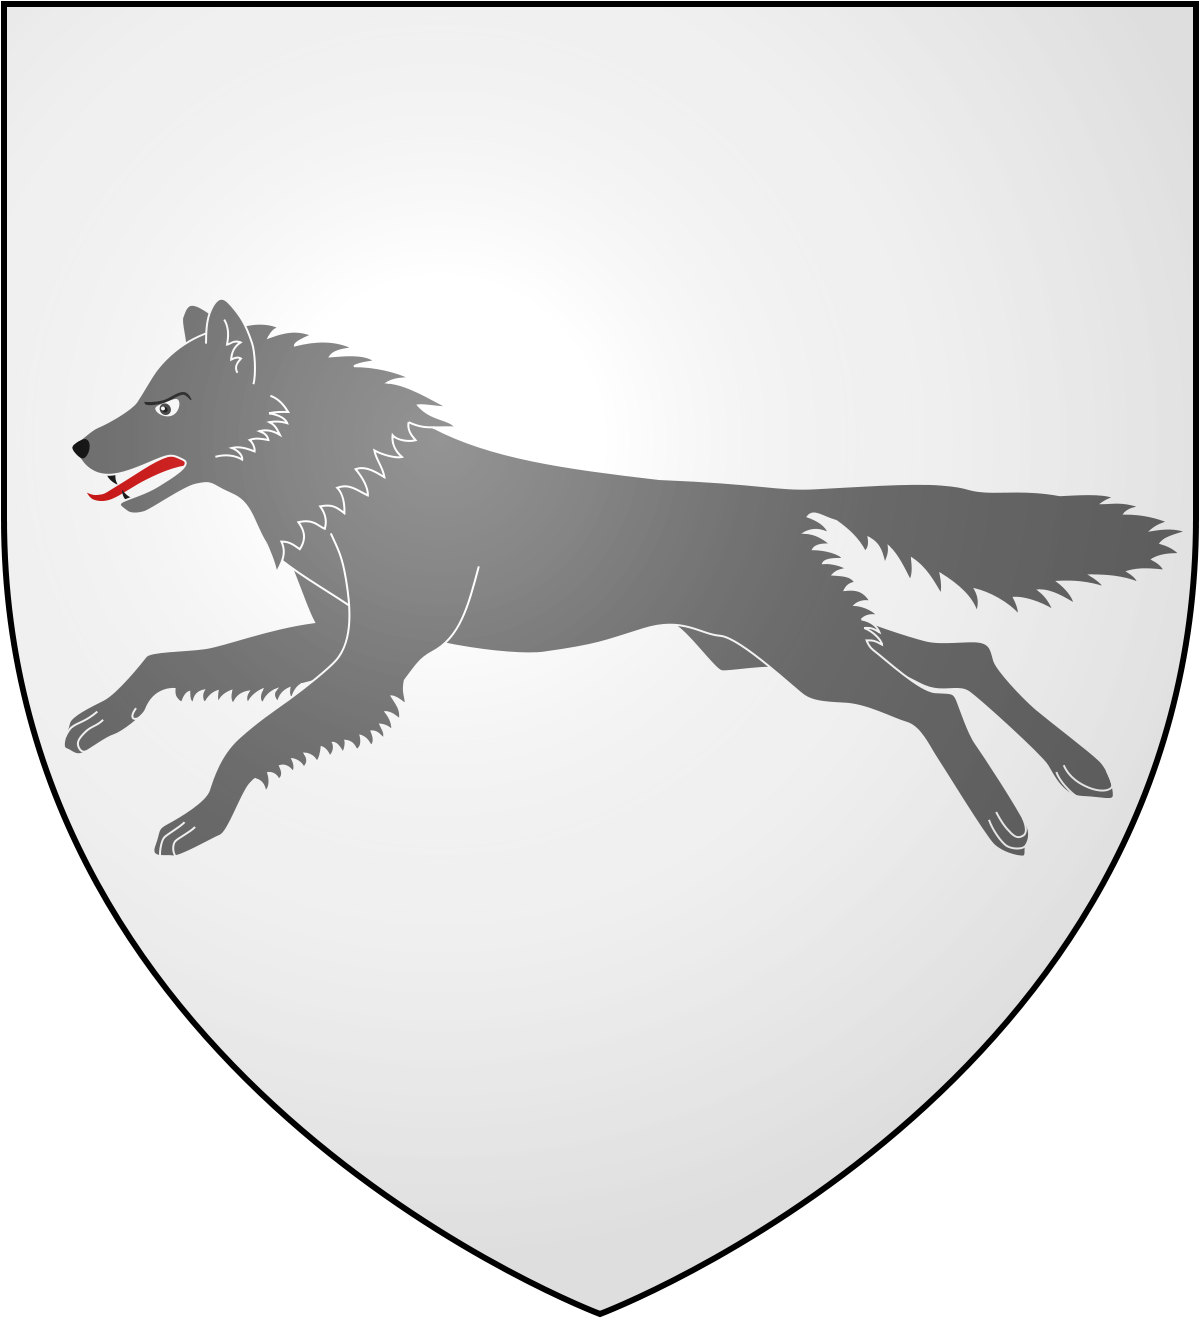 House Stark Of Winterfell Is One Of The Great Houses Of Westeros And The Principal Noble House Of The North In Days Stark Sigil House Stark Winterfell Castle